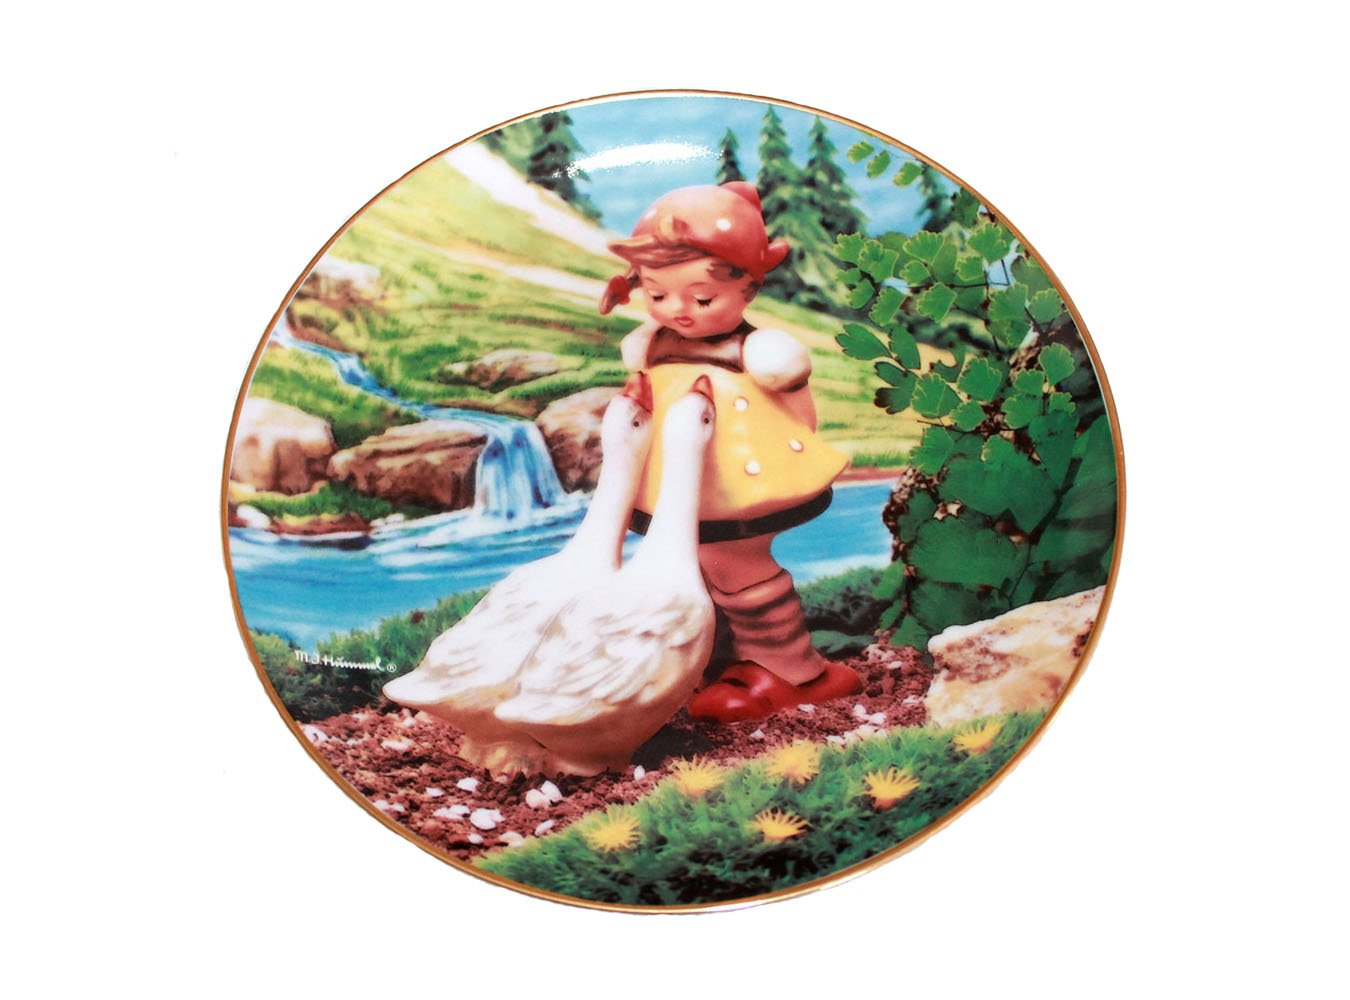 """Goose Girl by M. I. Hummel 8 1/4"""""""" Collectible Plate 23kt Gold Trim w/COA"""